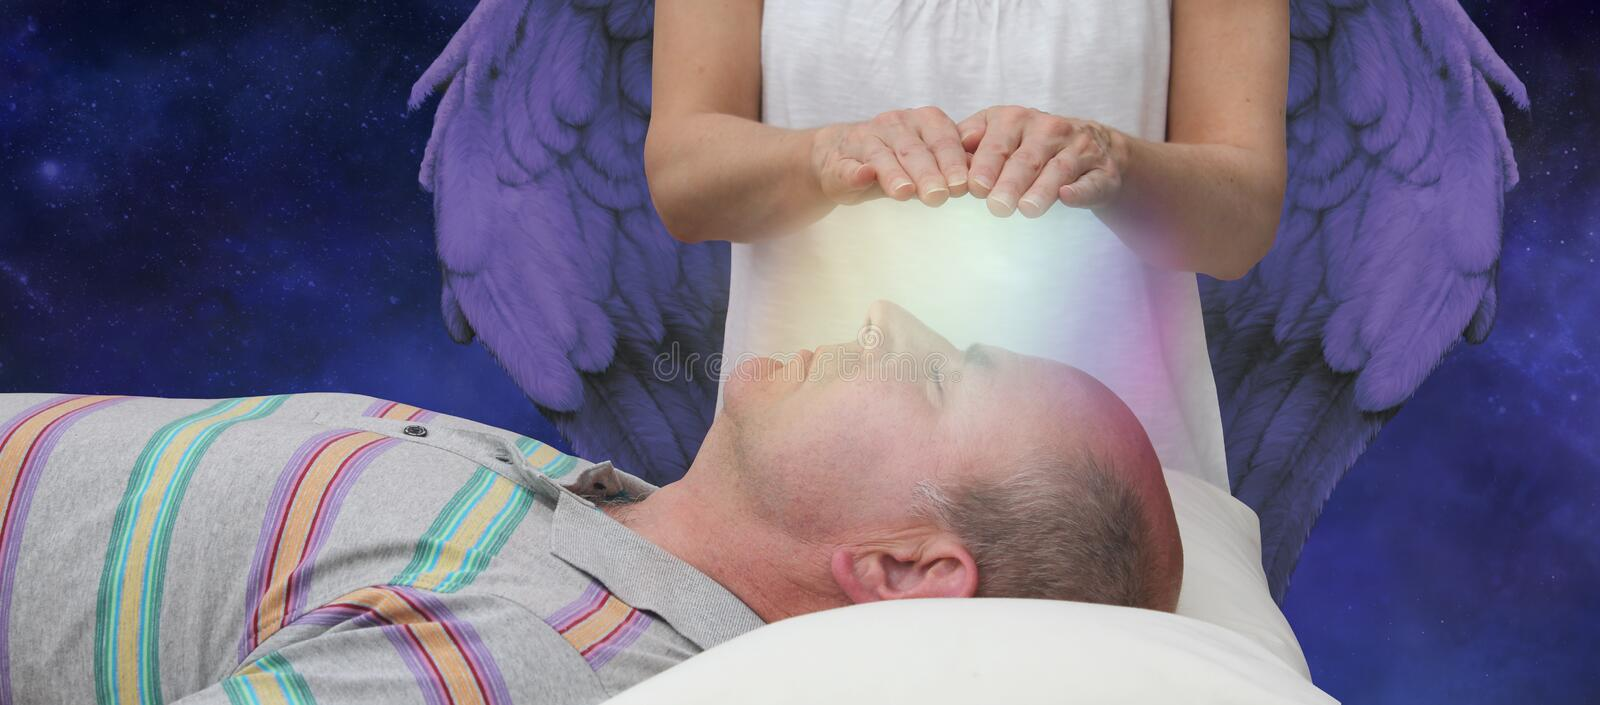 Angelic help during a healing session. Female hands hoovering above a male patient& x27;s face channeling energy together with a higher power in the background royalty free stock photo